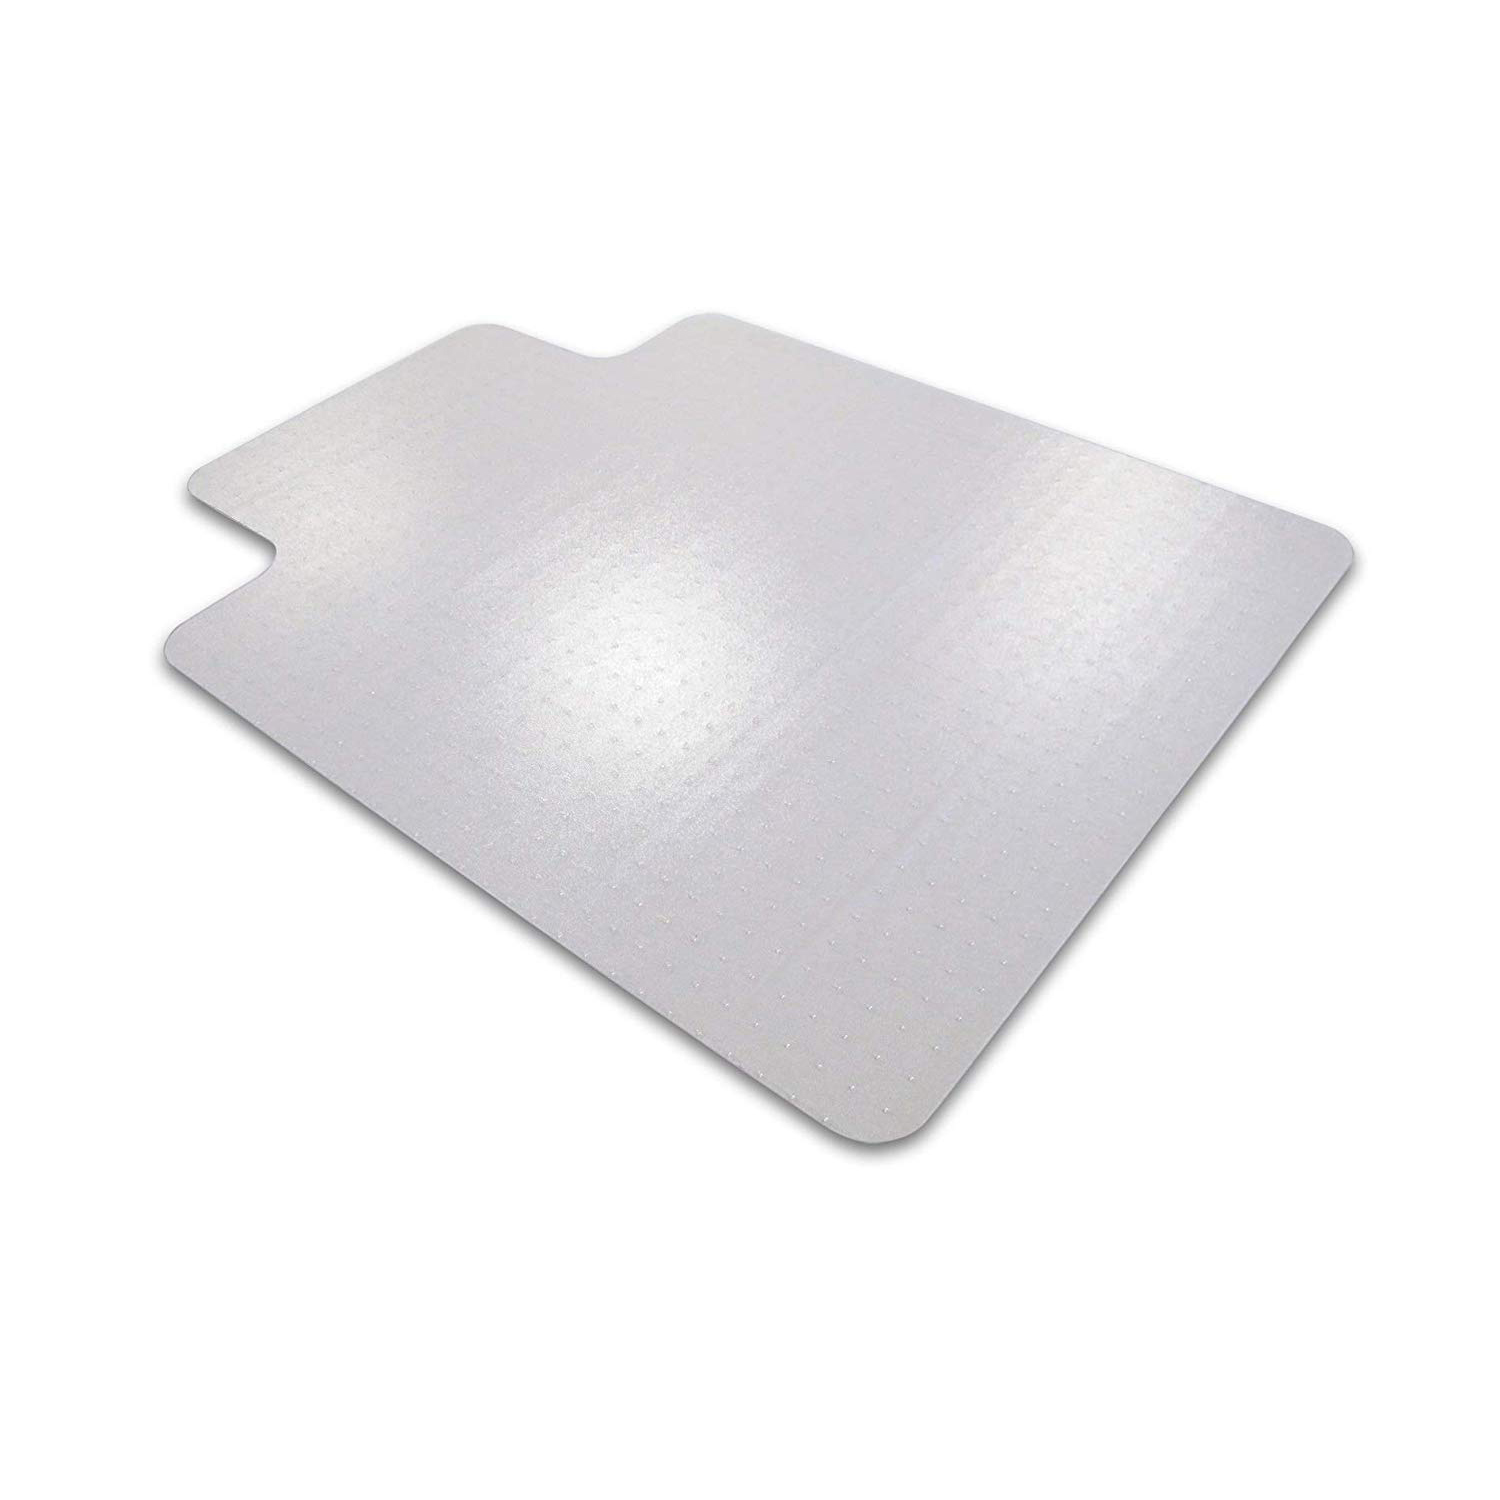 Floortex 11341525LV Lipped Studded Chair Mat - 115 x 135cm (pc)